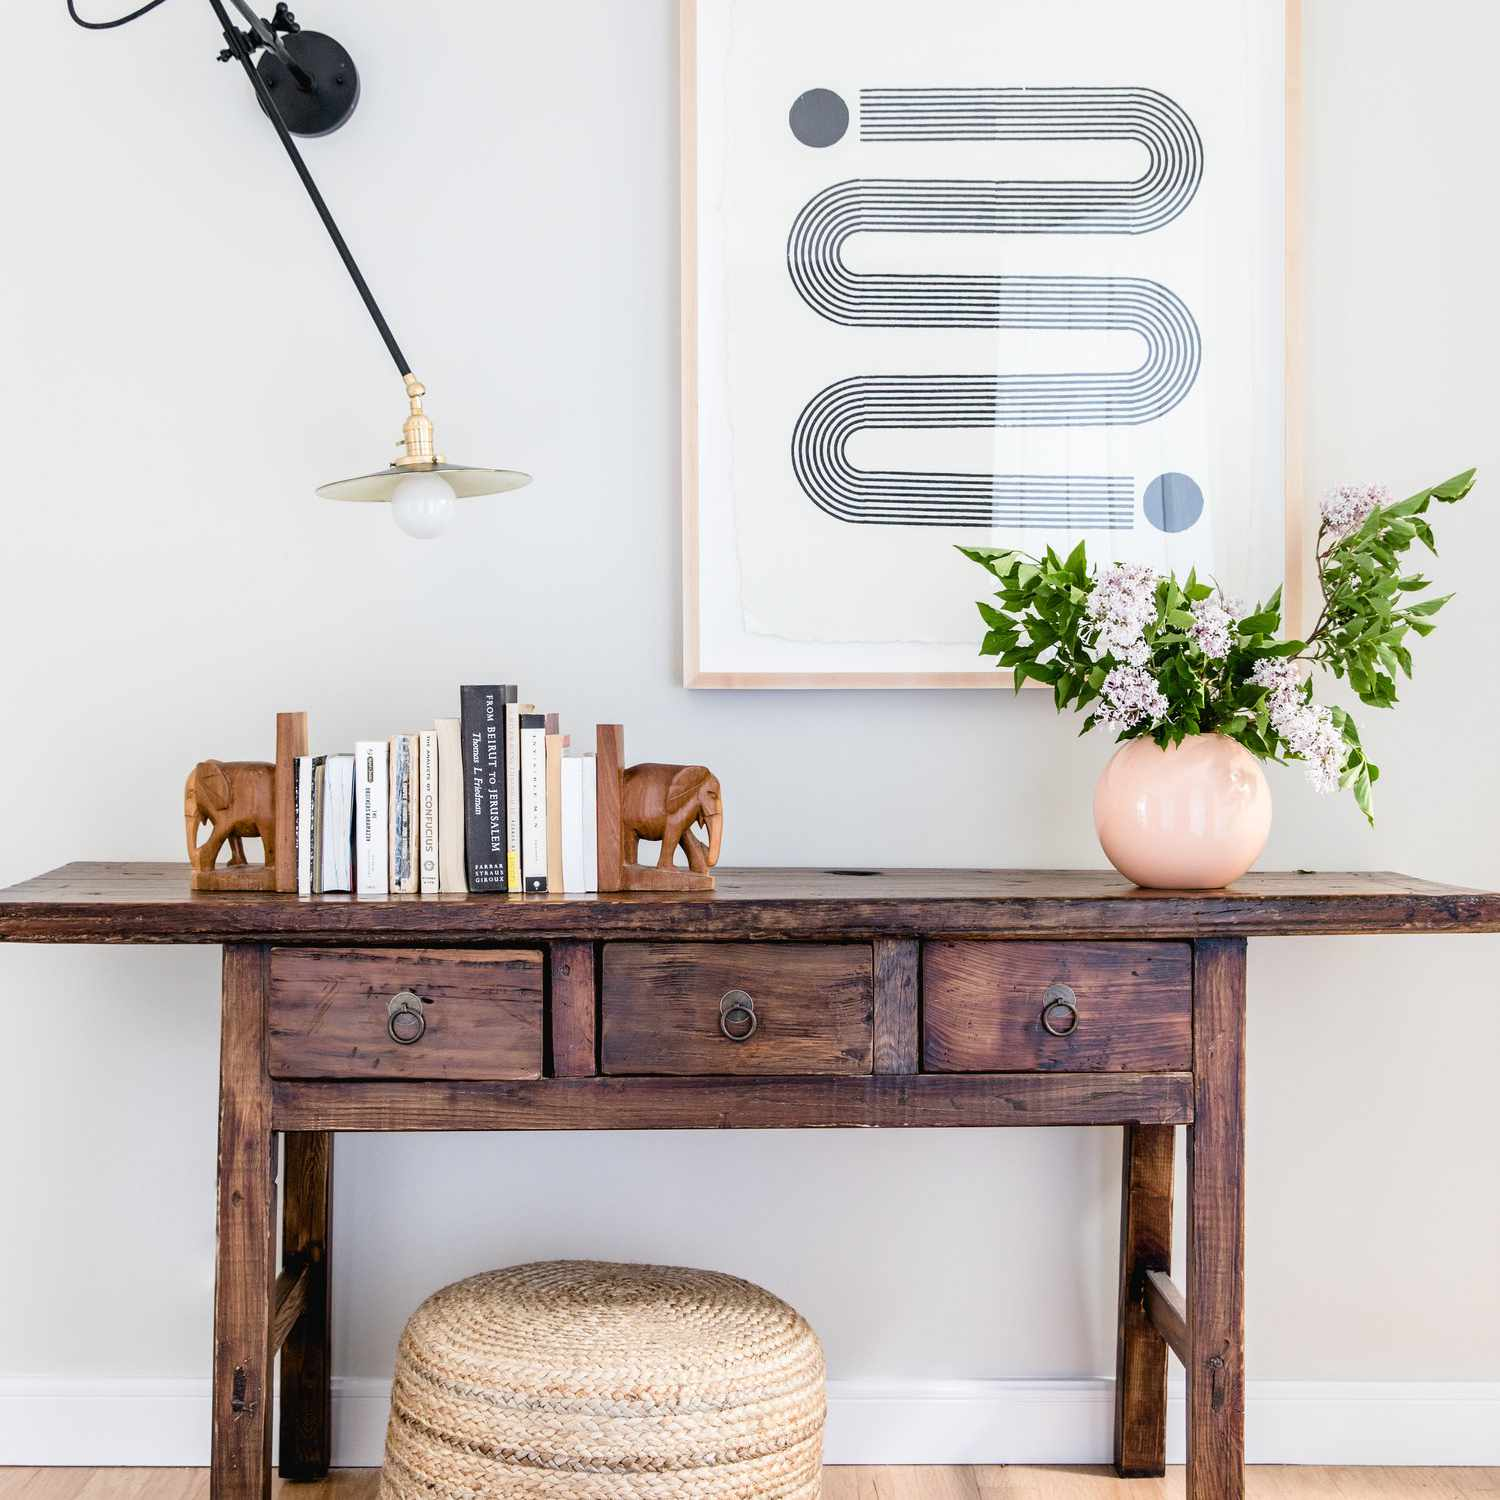 Wooden console with books and plant.